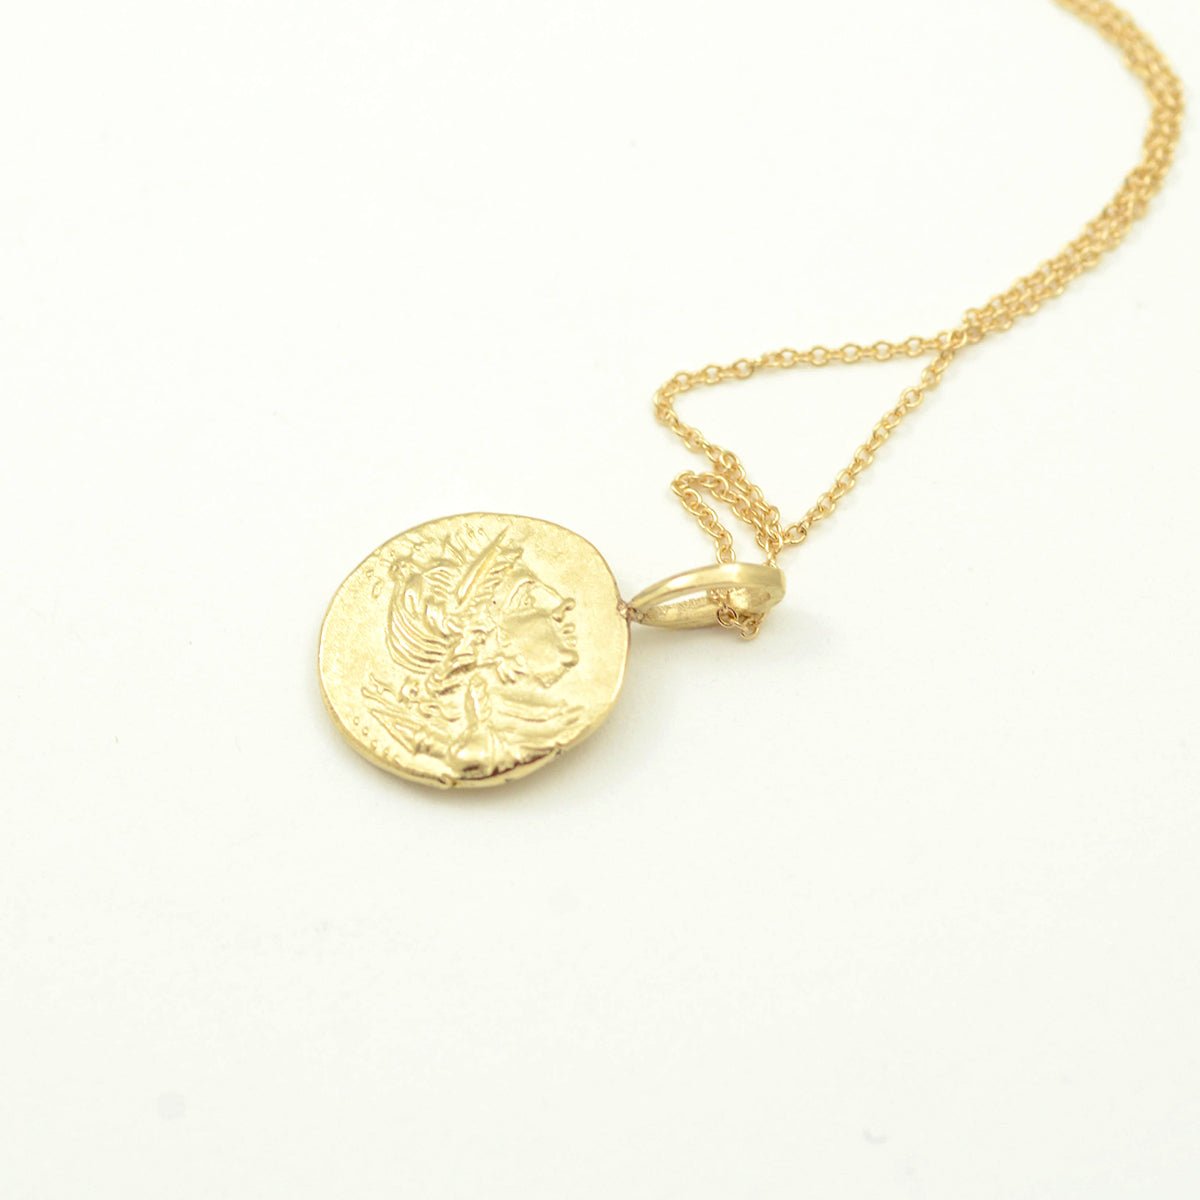 Robin Haley artifact collection the lion necklace in 14kt yellow gold